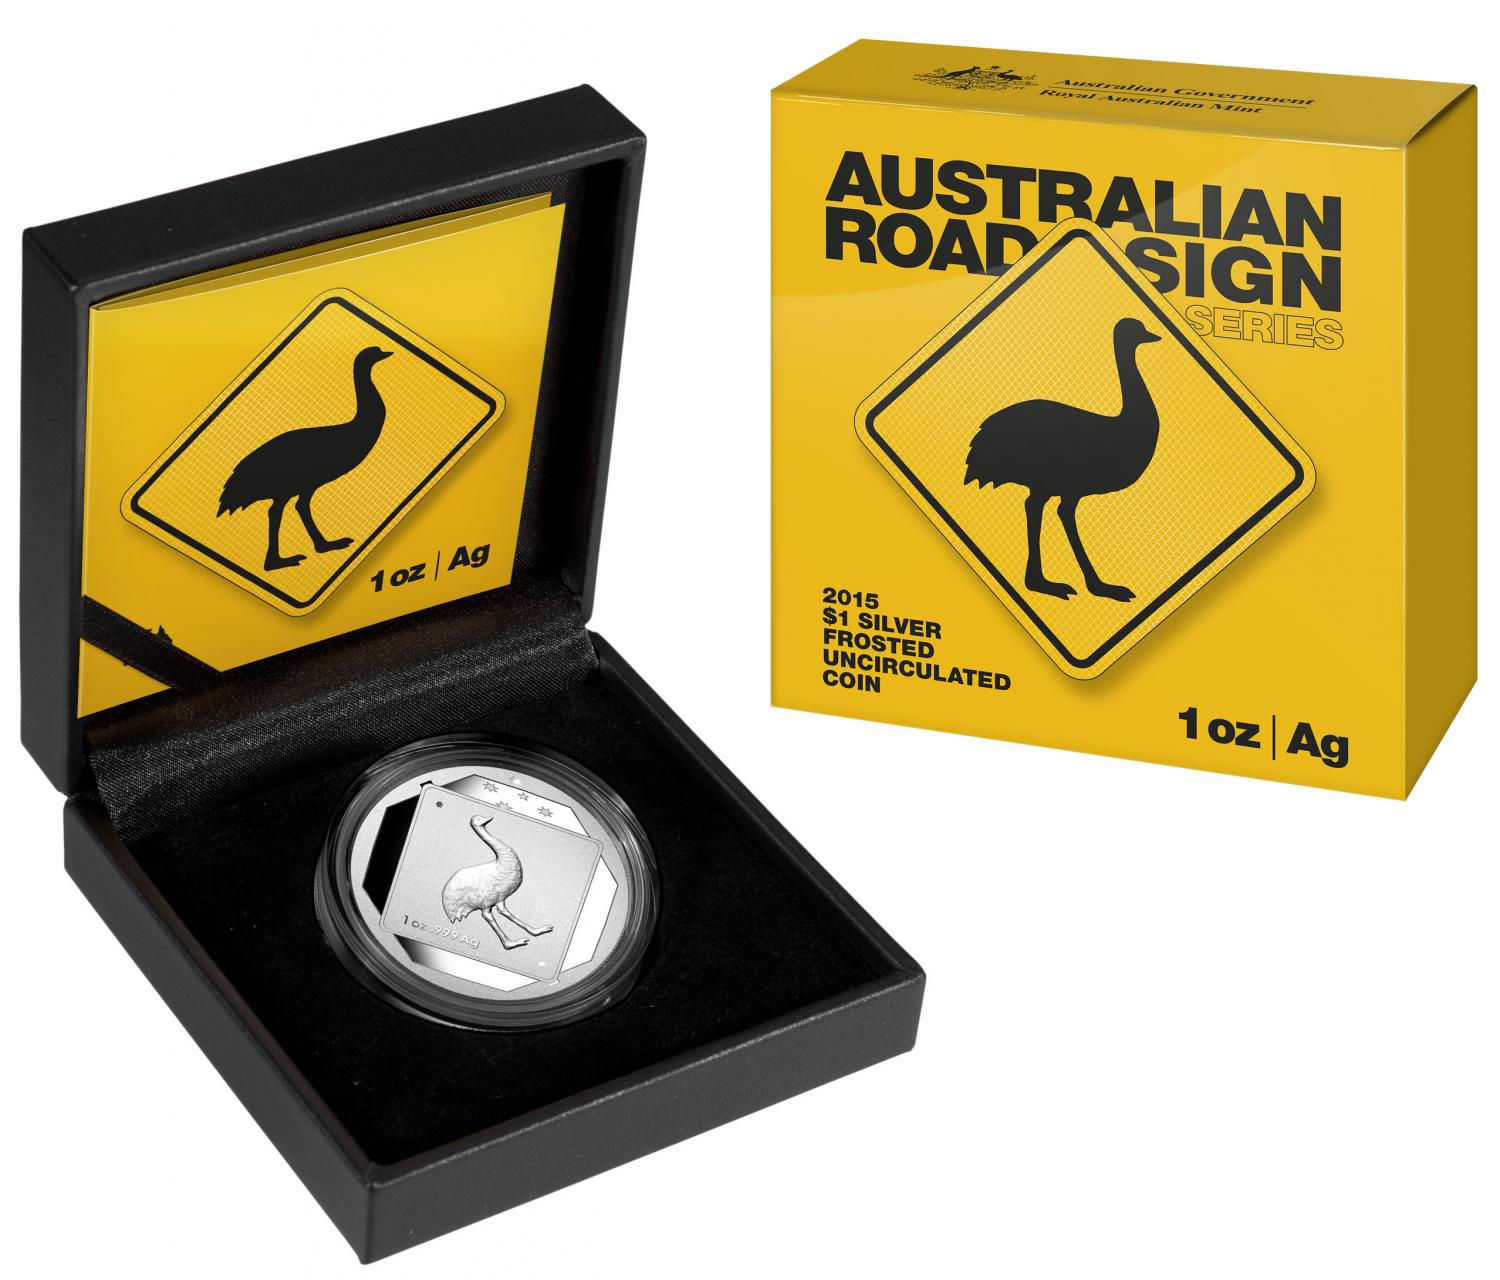 Thumbnail for 2015 1oz Silver Road Sign Series - Emu